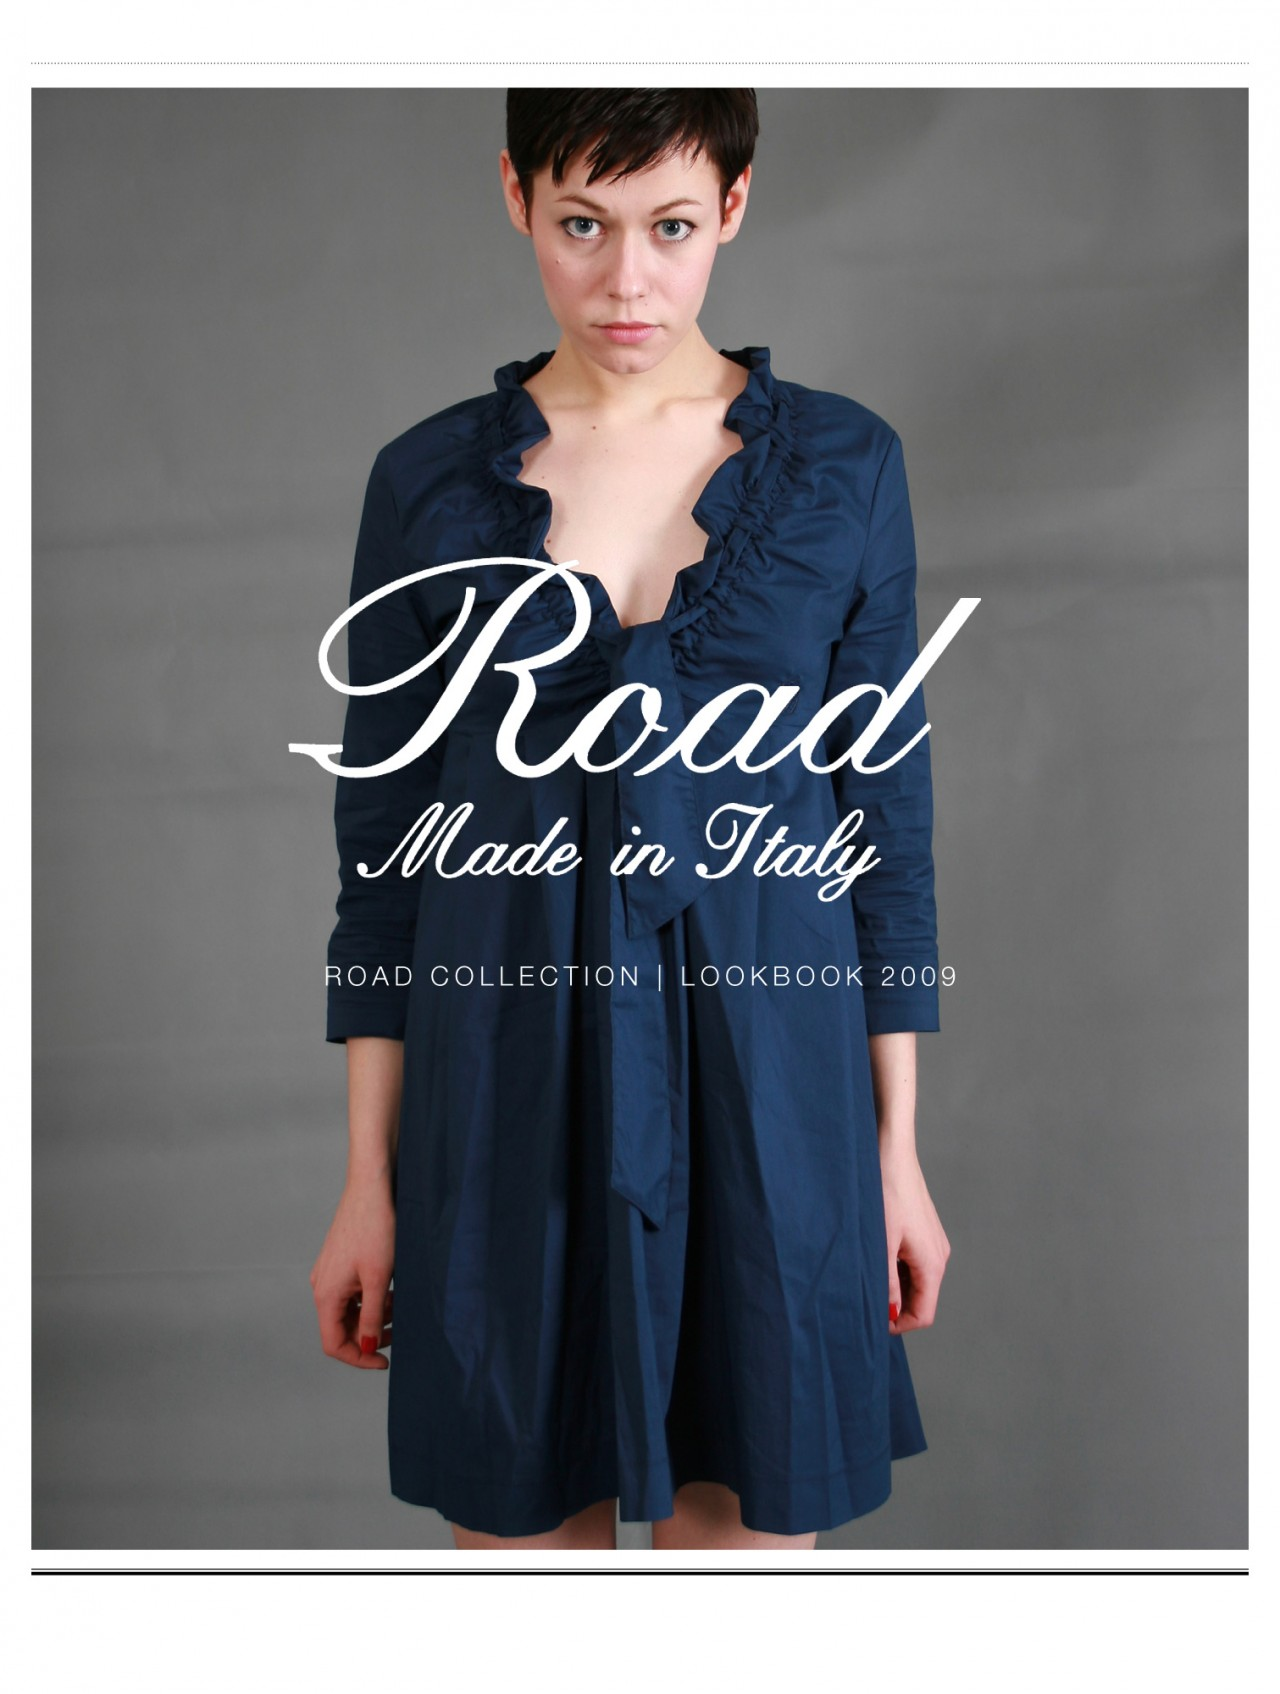 soheyl nassary ROAD COLLECTION / LOOKBOOK 2009